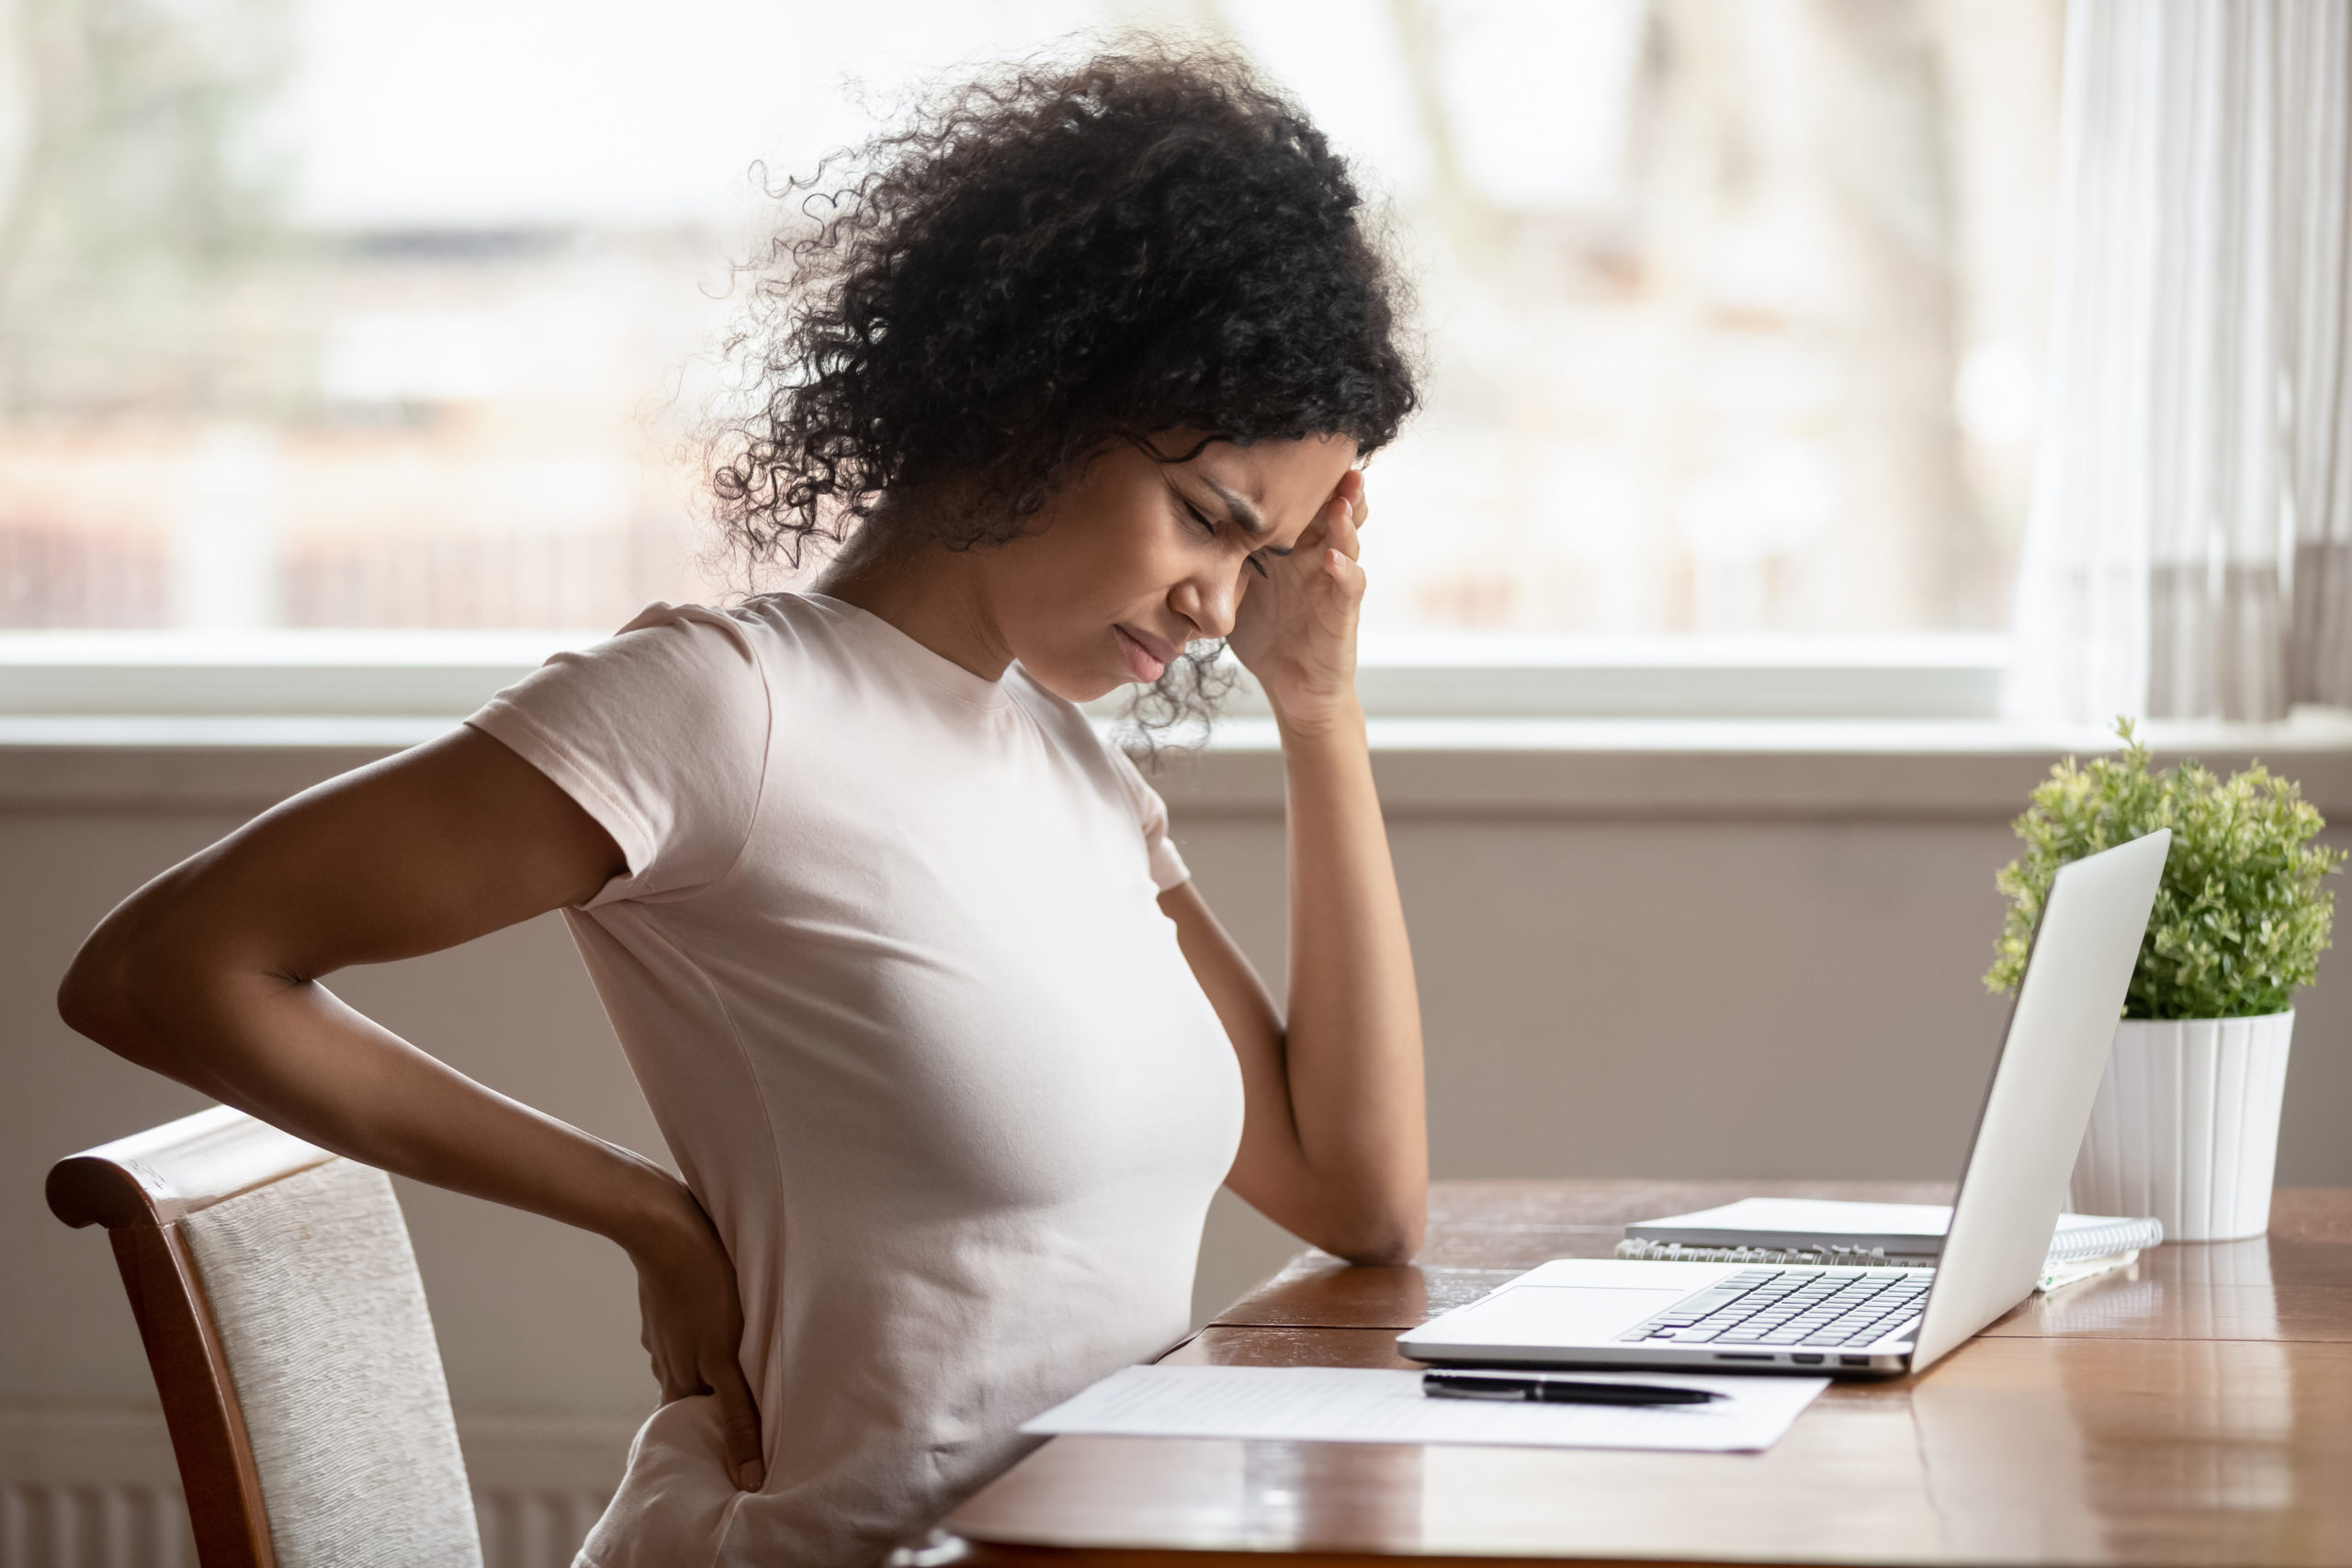 Unwell african American millennial woman sit at table work at laptop touch lower back suffer from incorrect posture, tired biracial female have painful feeling, struggle with backache or spine spasm